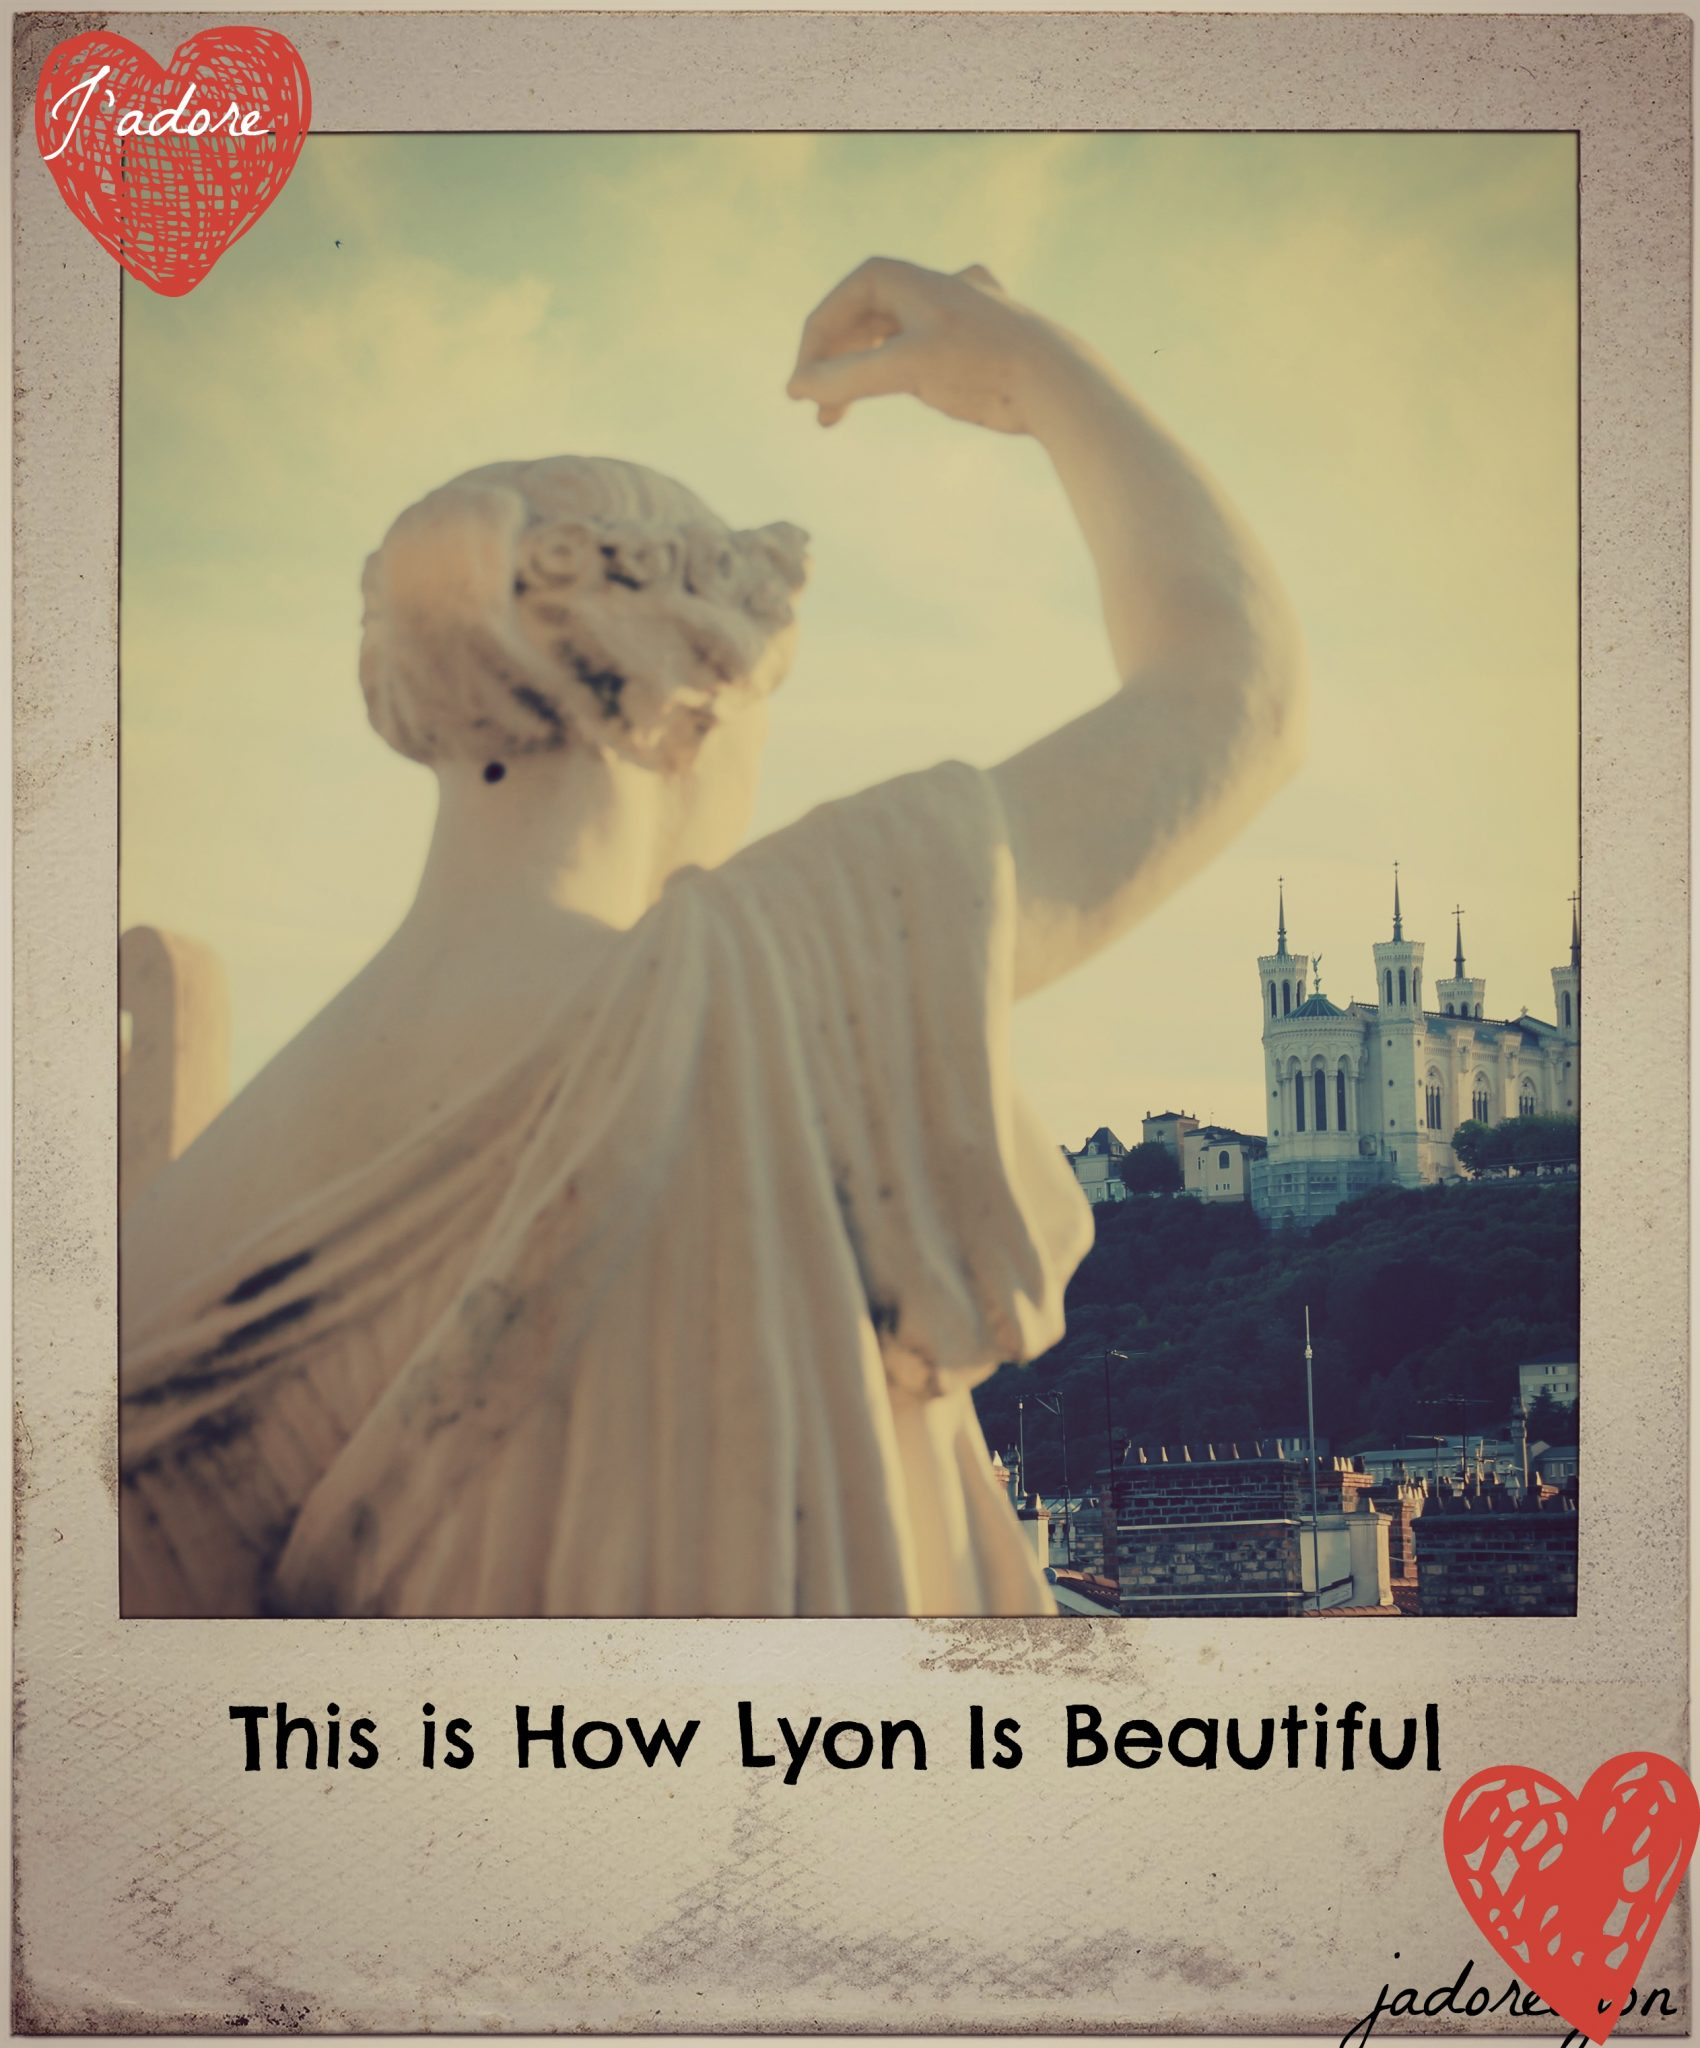 This is how Lyon is beautiful